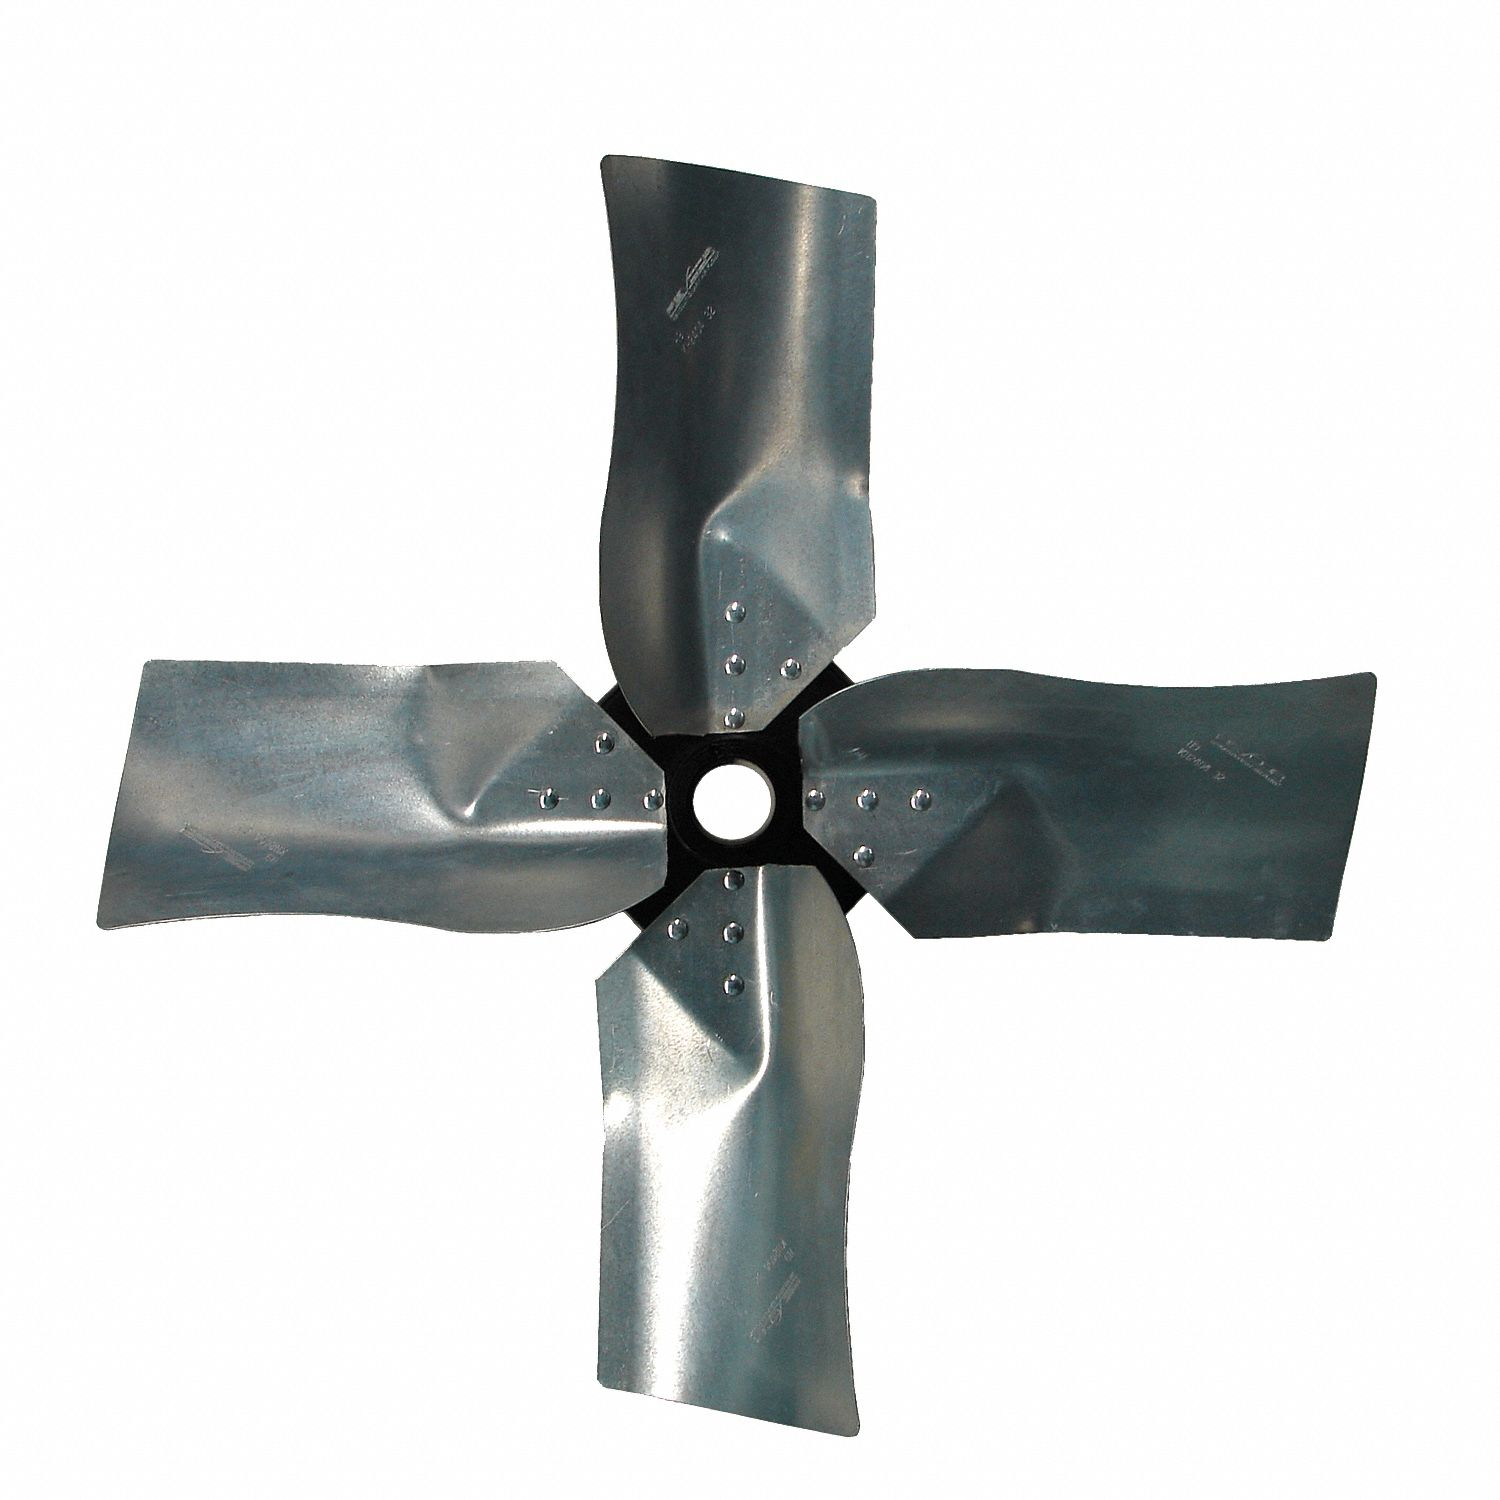 Replacement Propeller,  36 in Propeller Dia. (In.),  18,417 CFM @ 0.000-In. SP